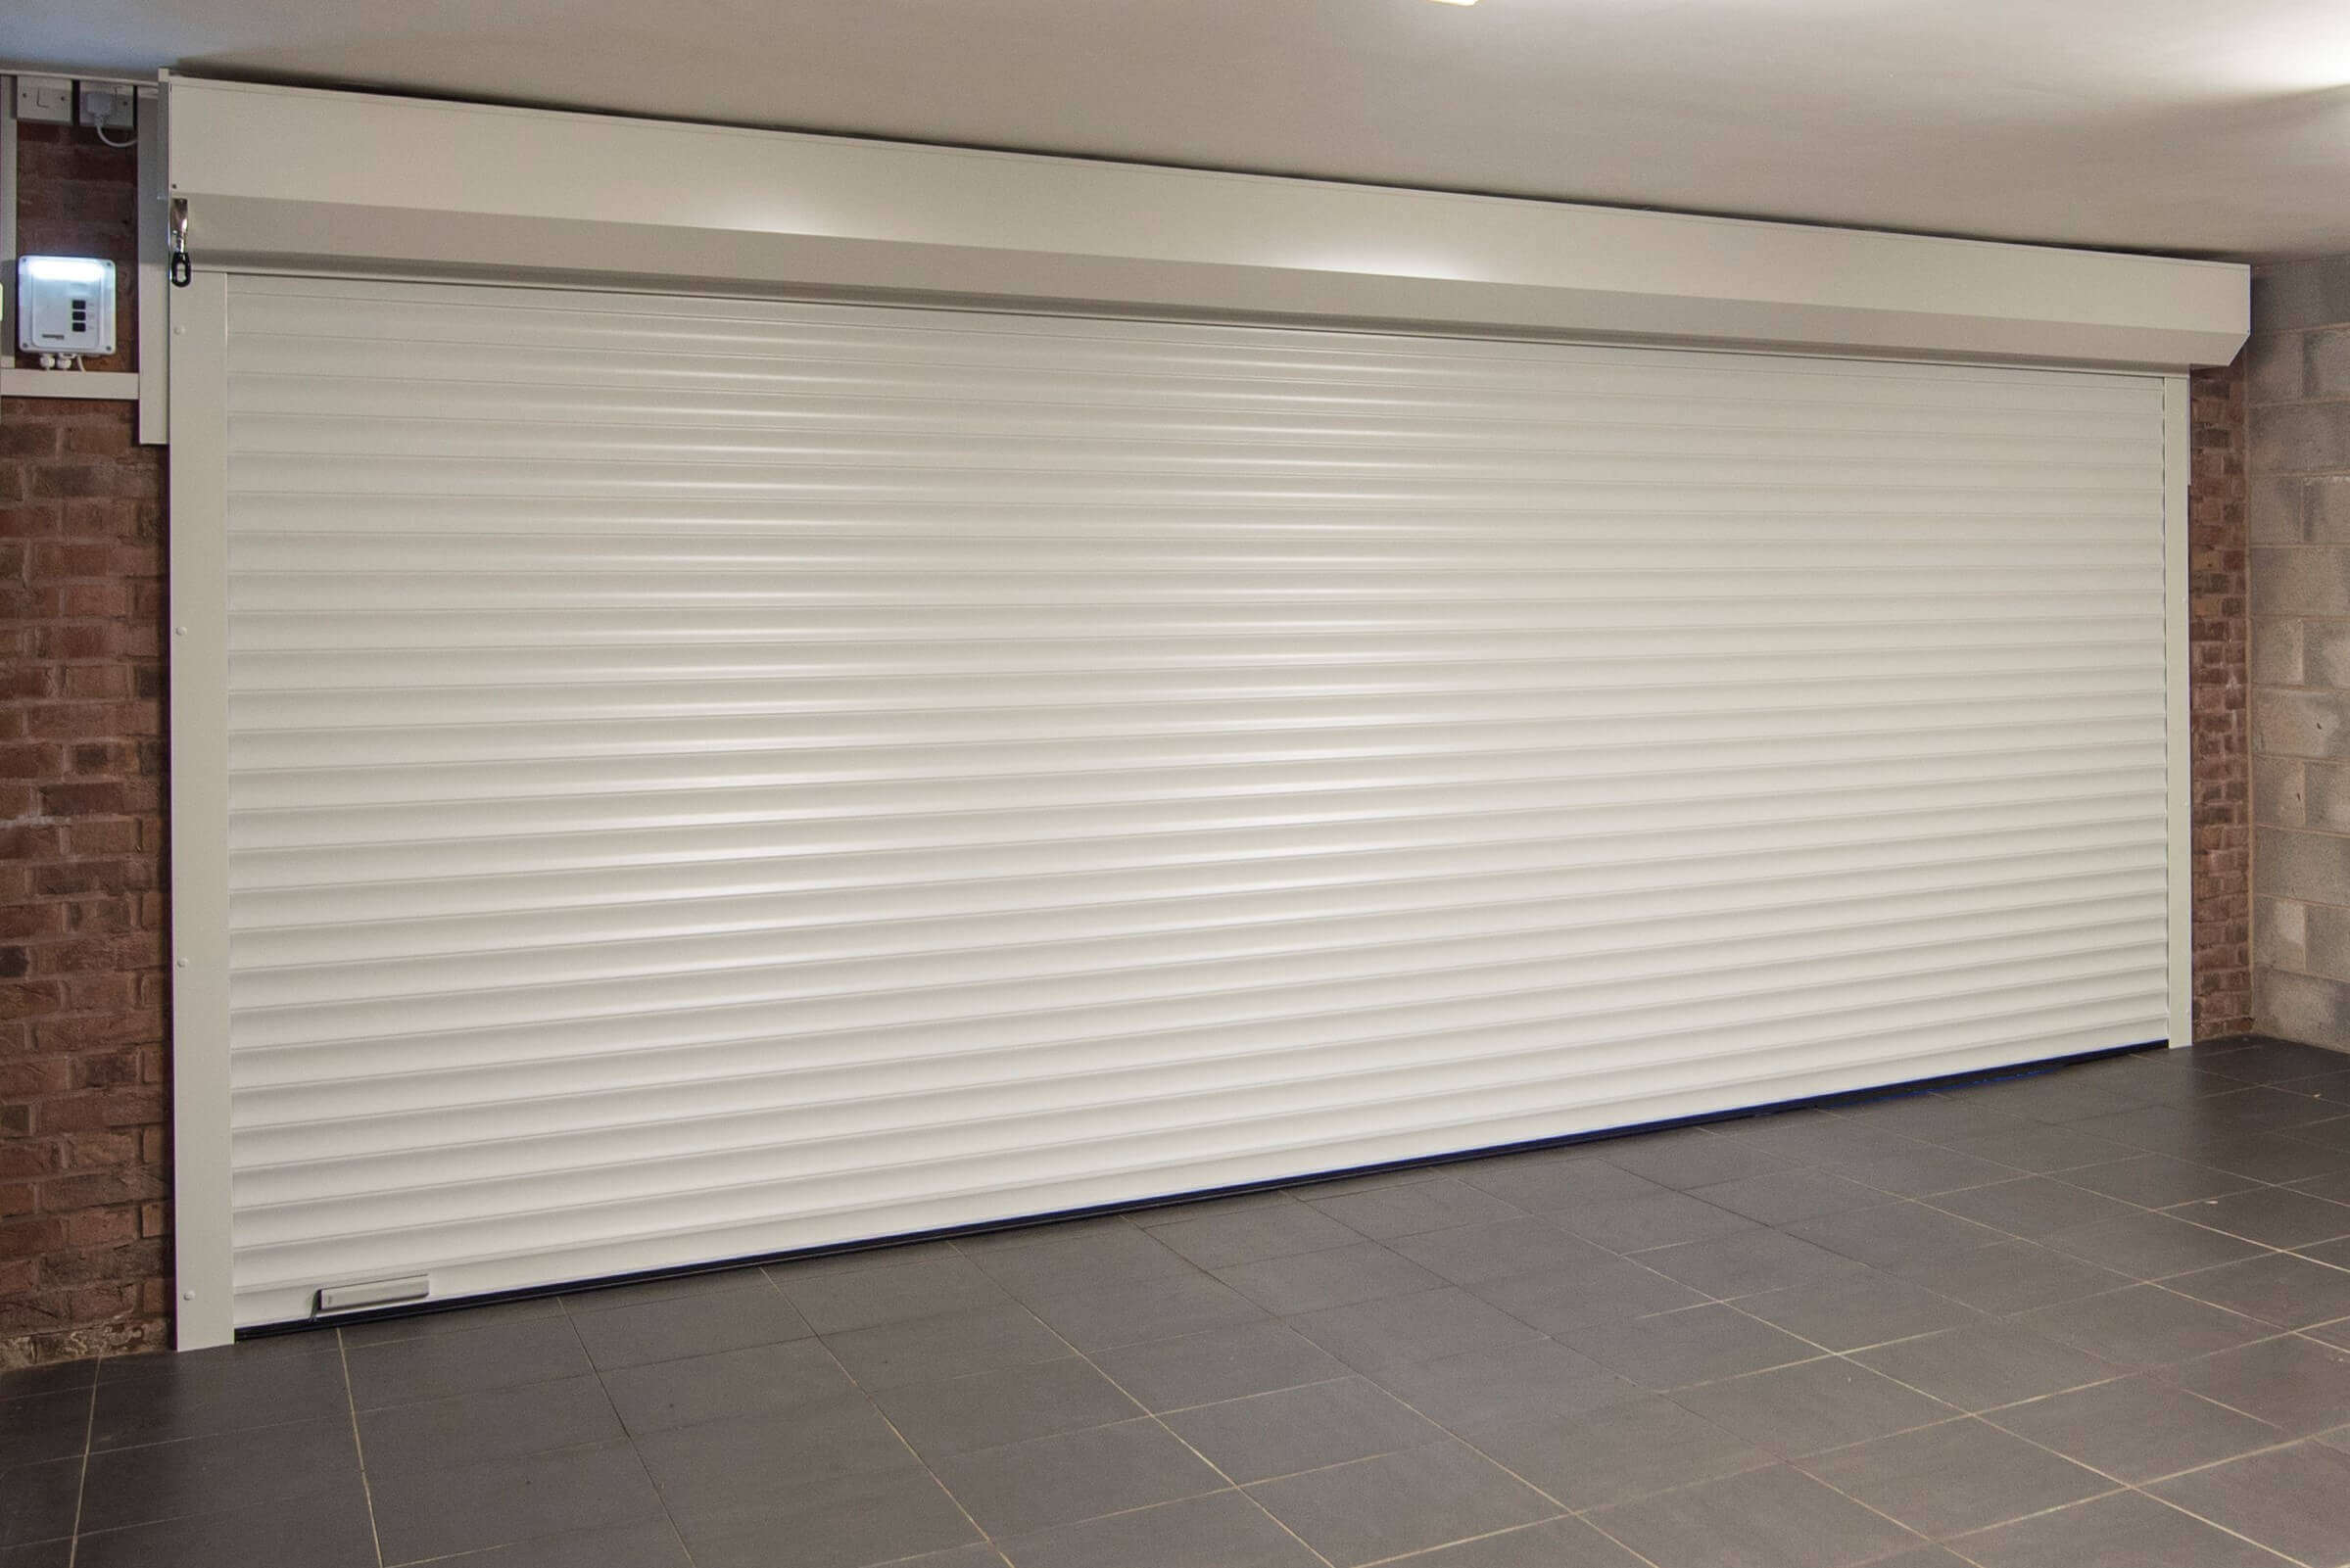 Image of Garage Door Installation Inside Closed